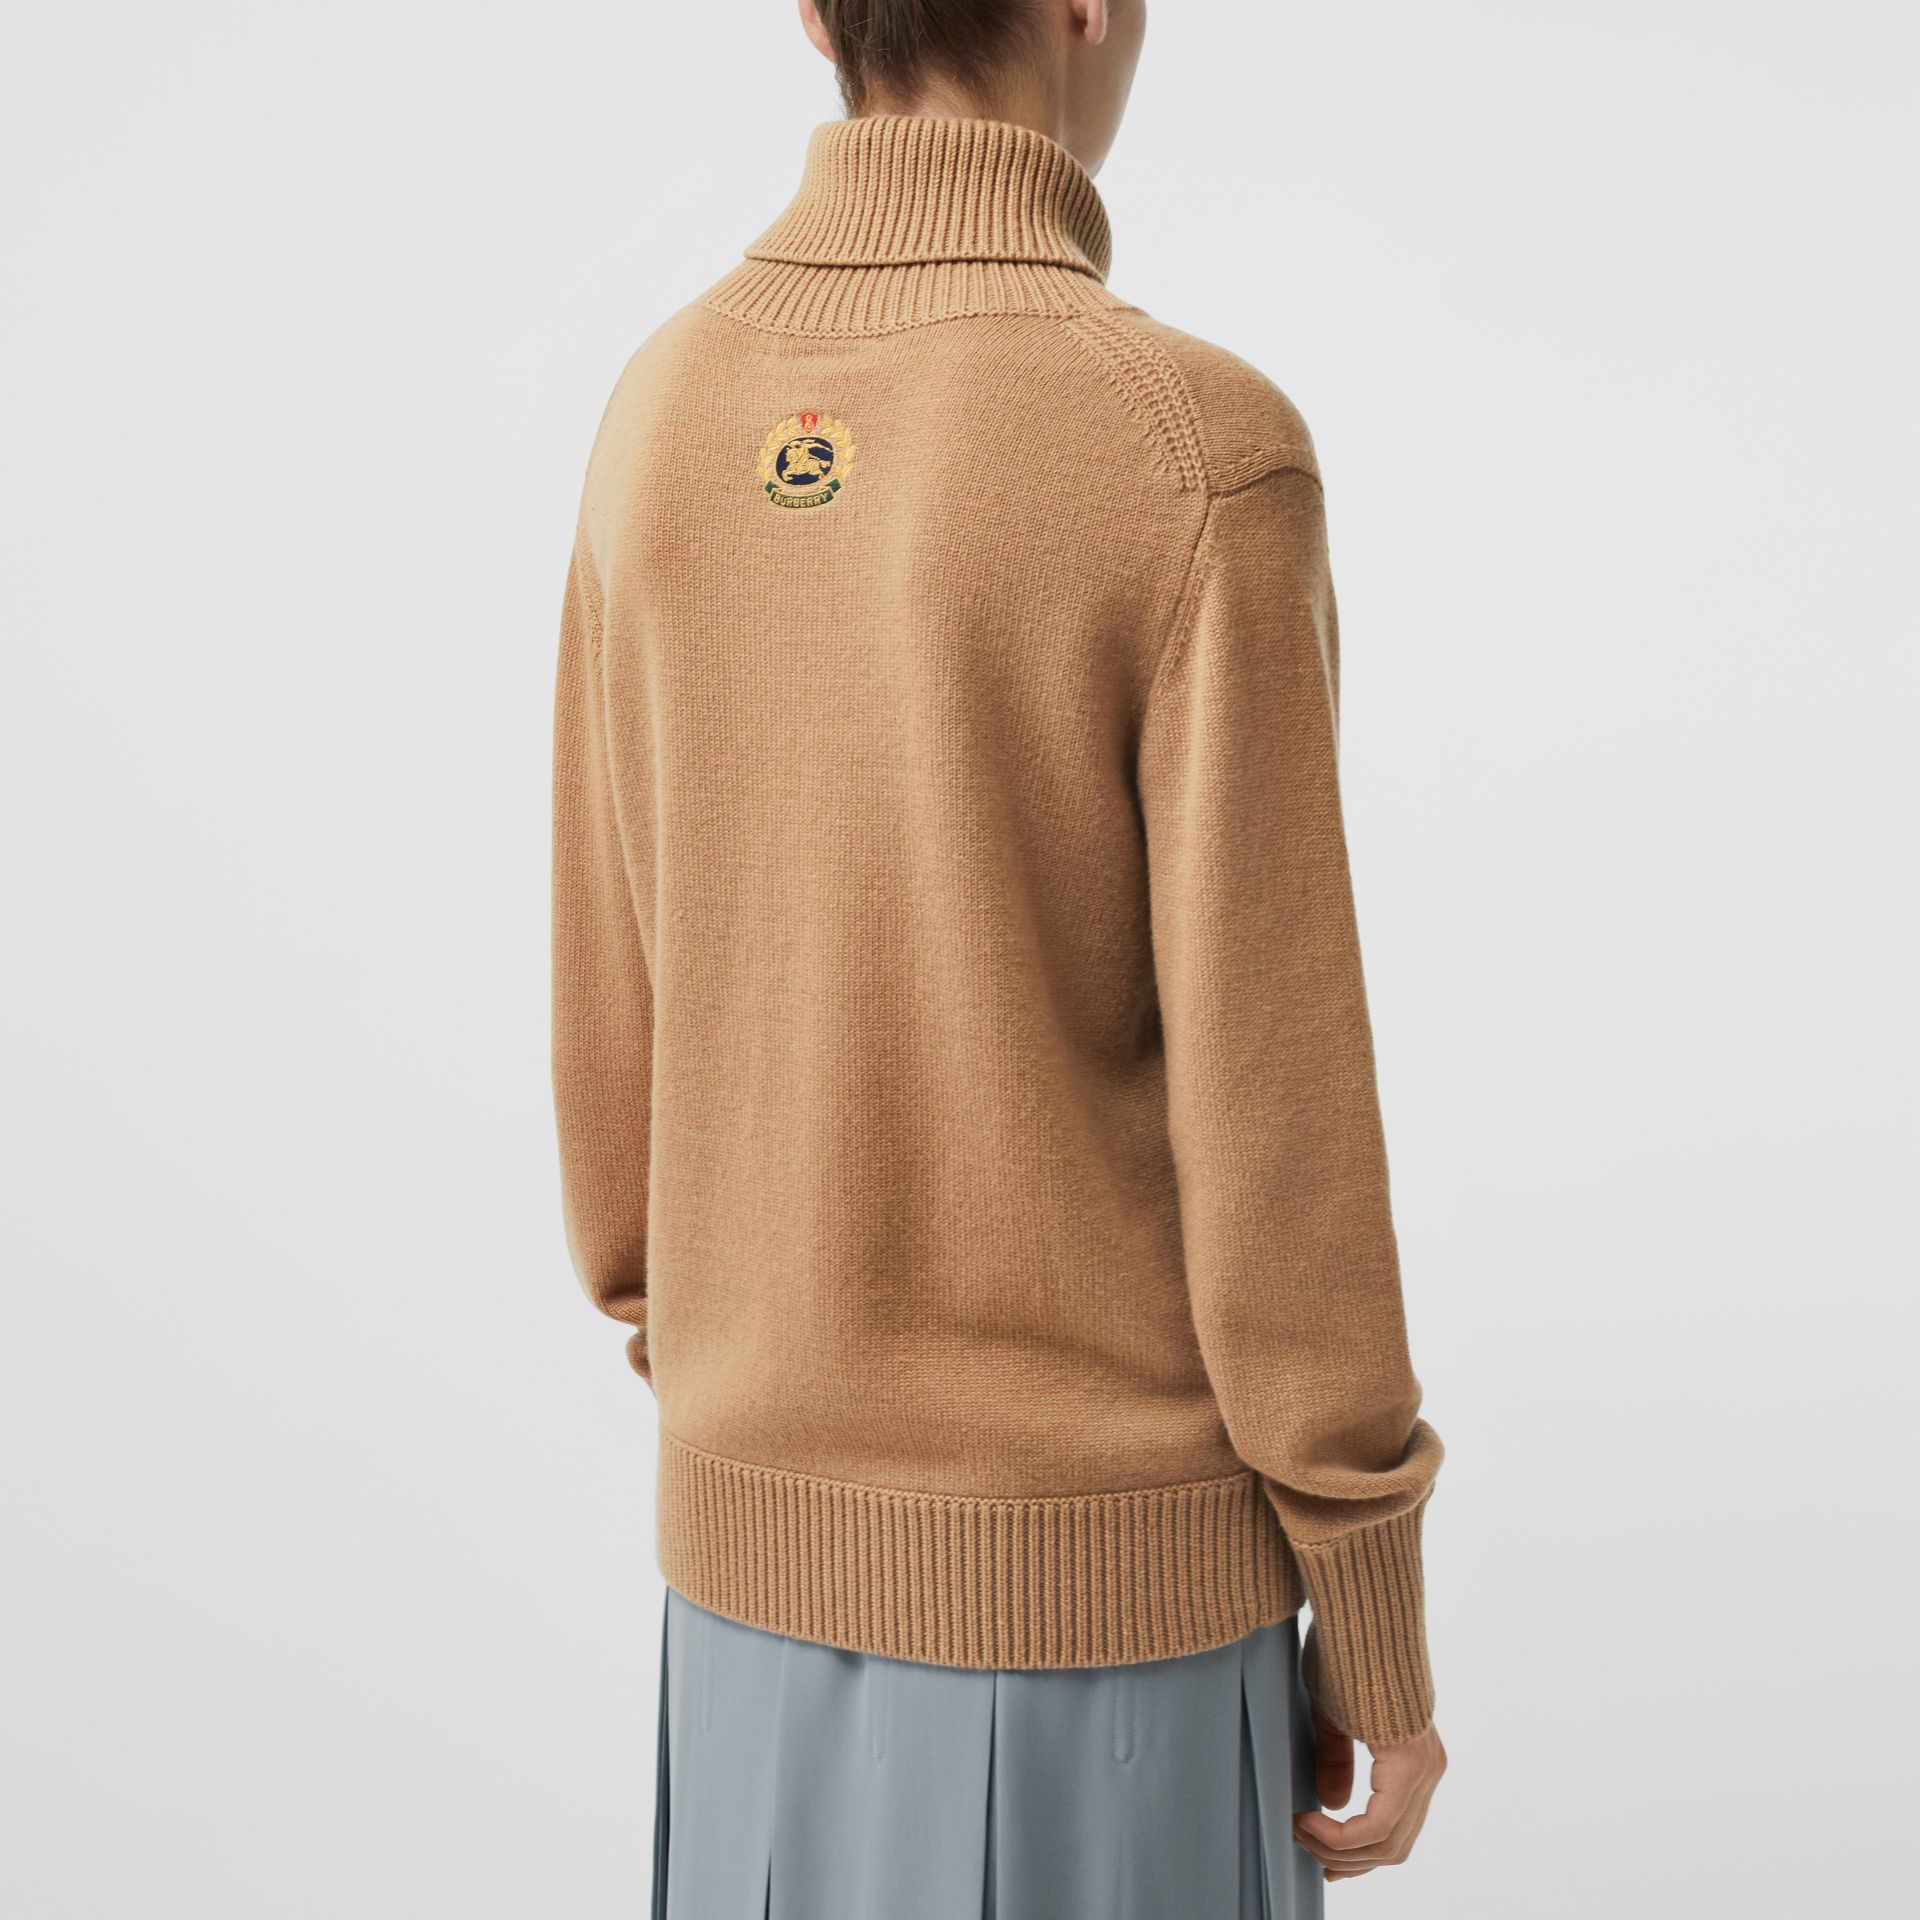 Embroidered Crest Cashmere Roll-neck Sweater in Camel - Women | Burberry United States - gallery image 2